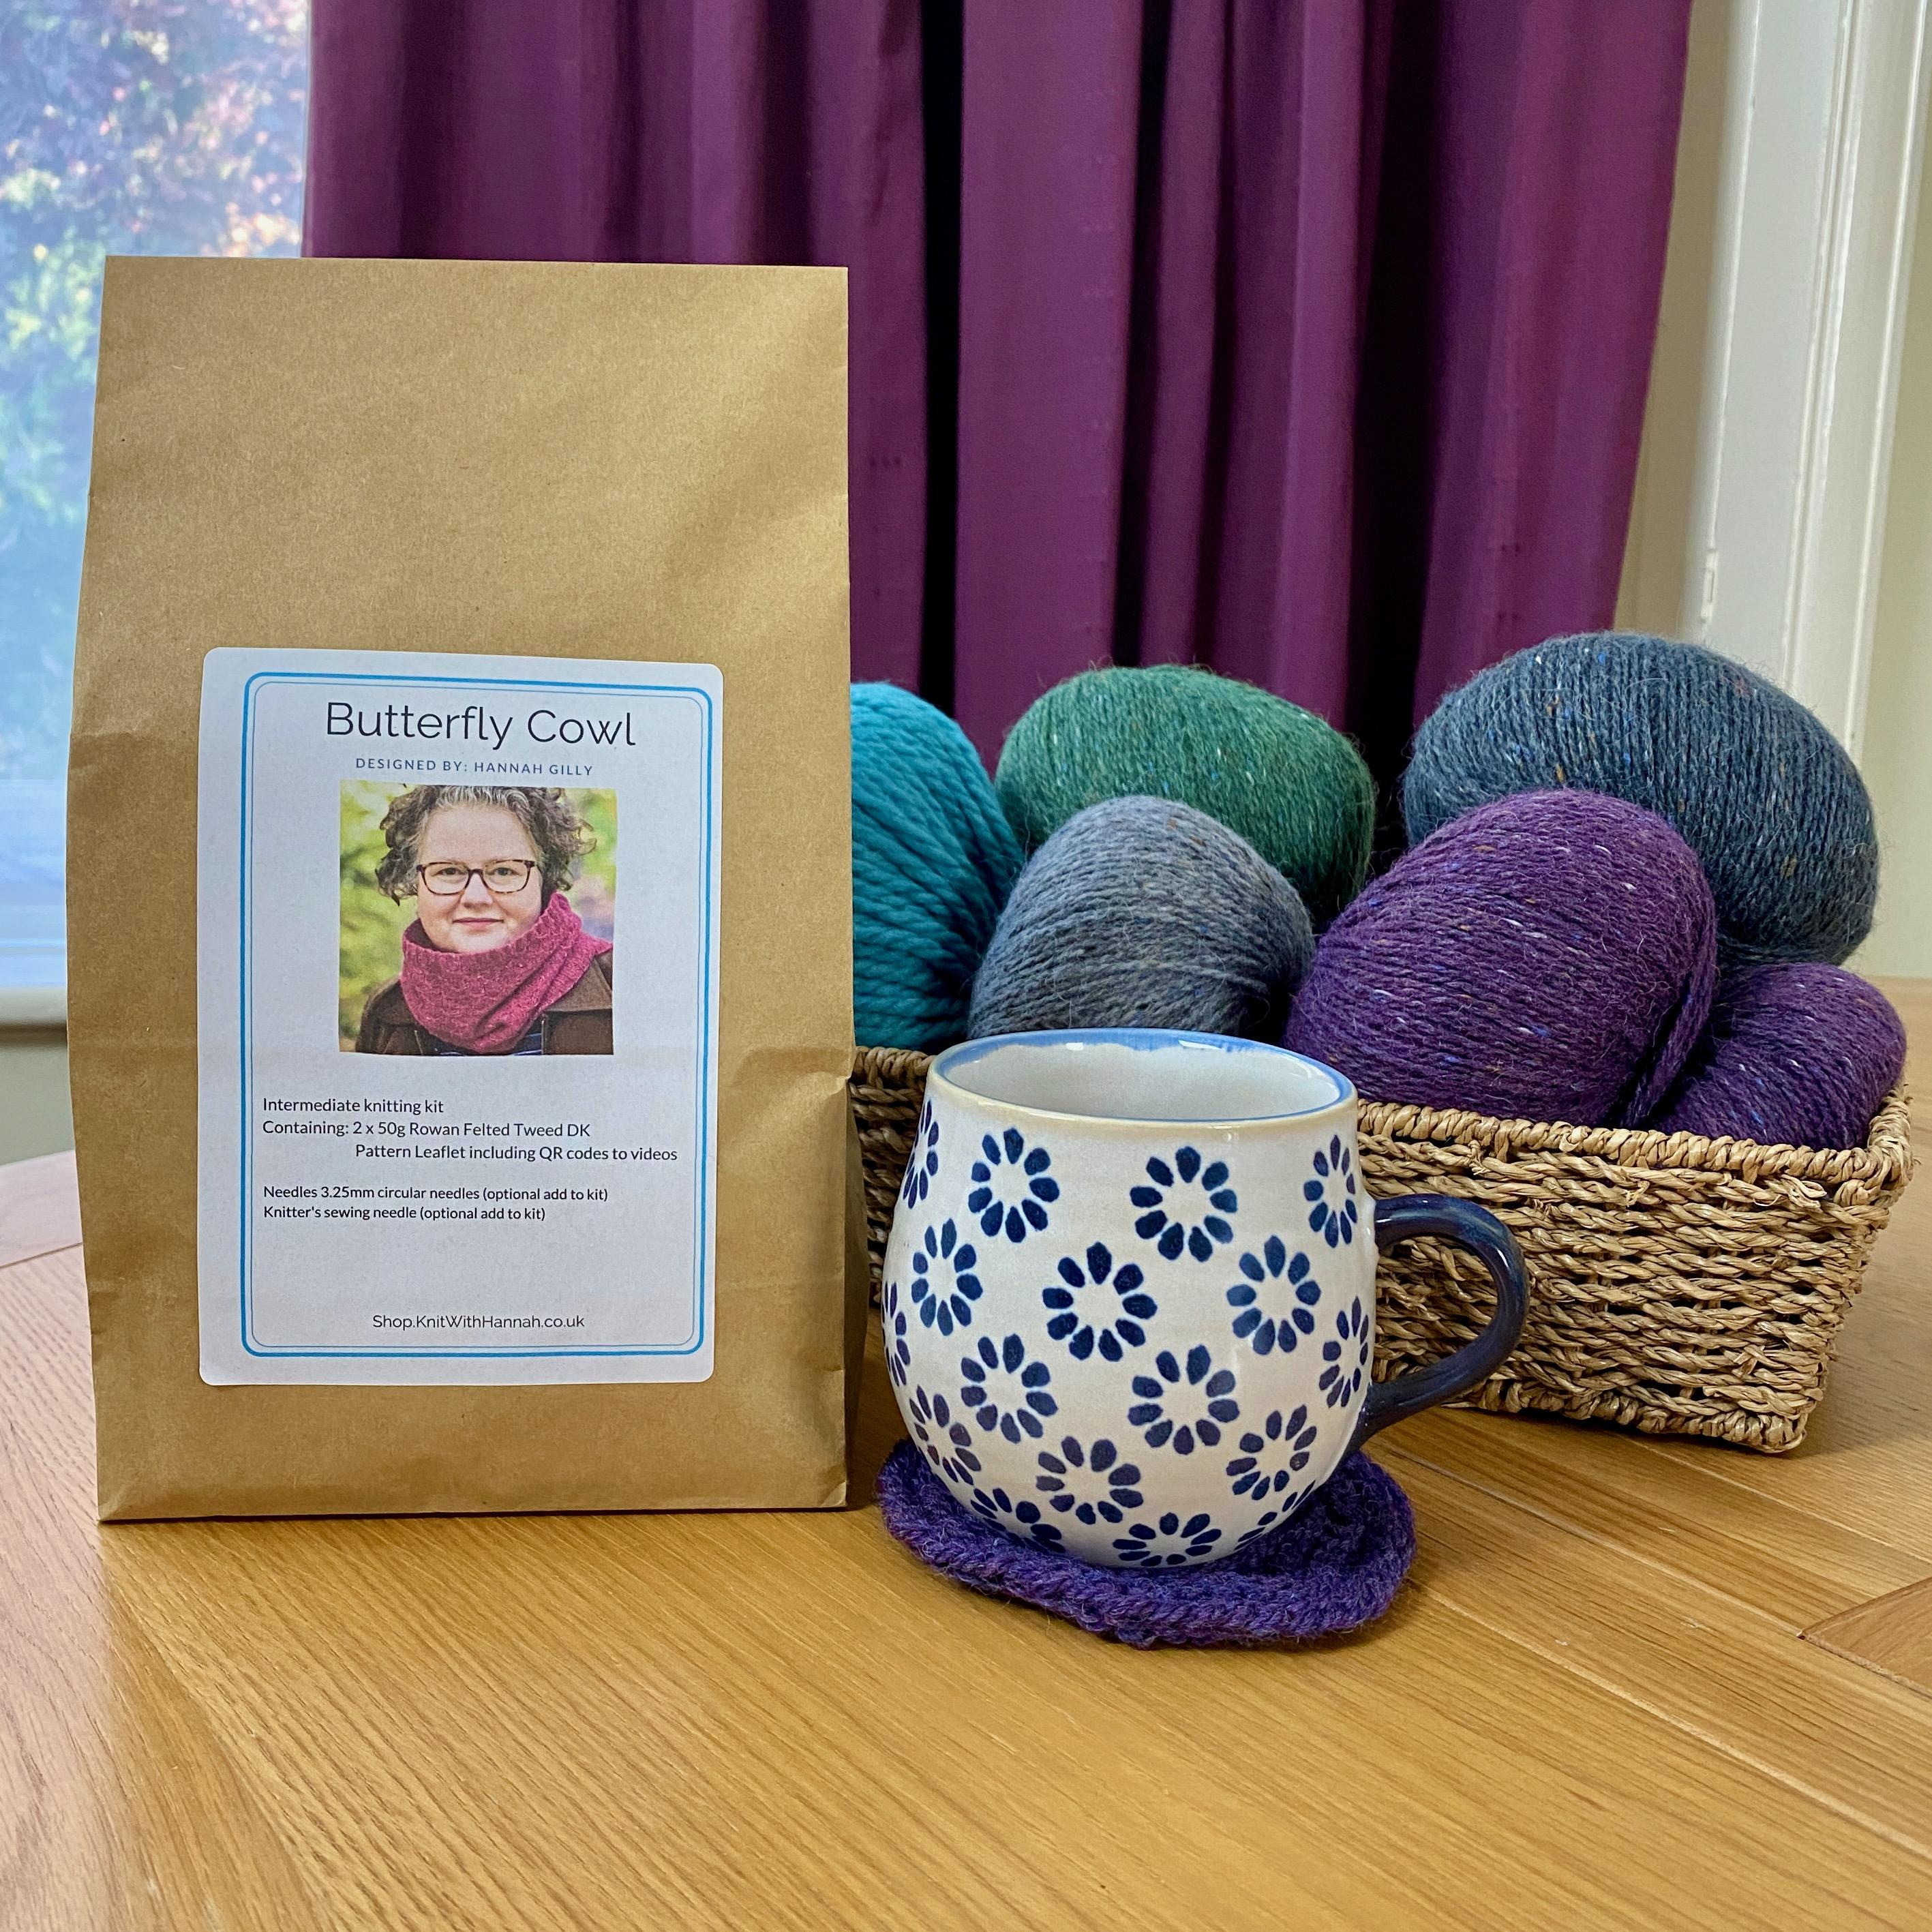 Butterfly Cowl Knitting Kit sitting on wooden table with blue & white mug of tea and